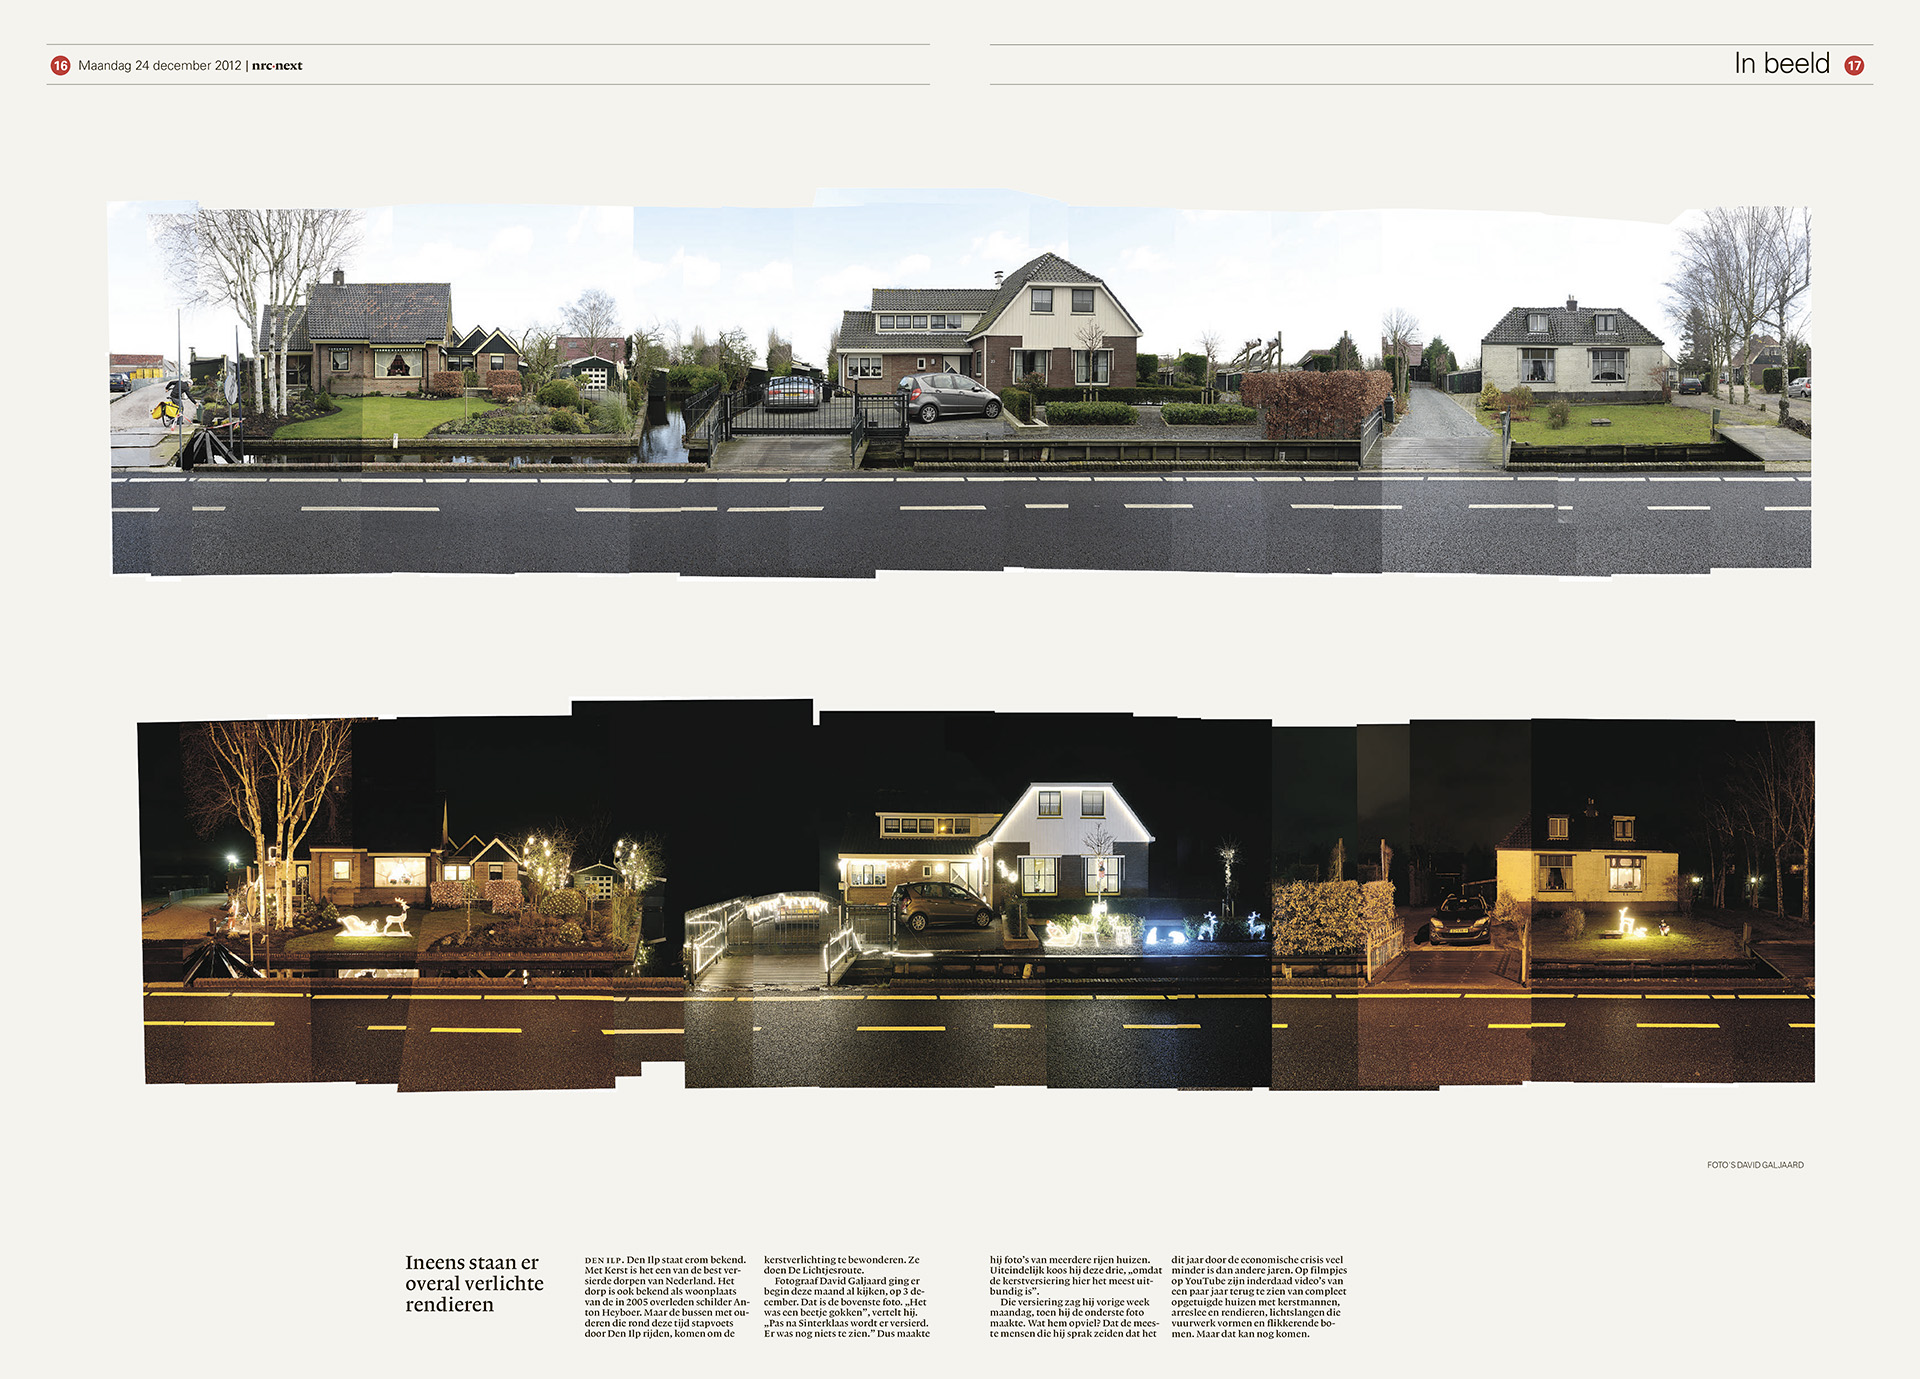 NRC Next - In beeld - Kerst spread - David Galjaard